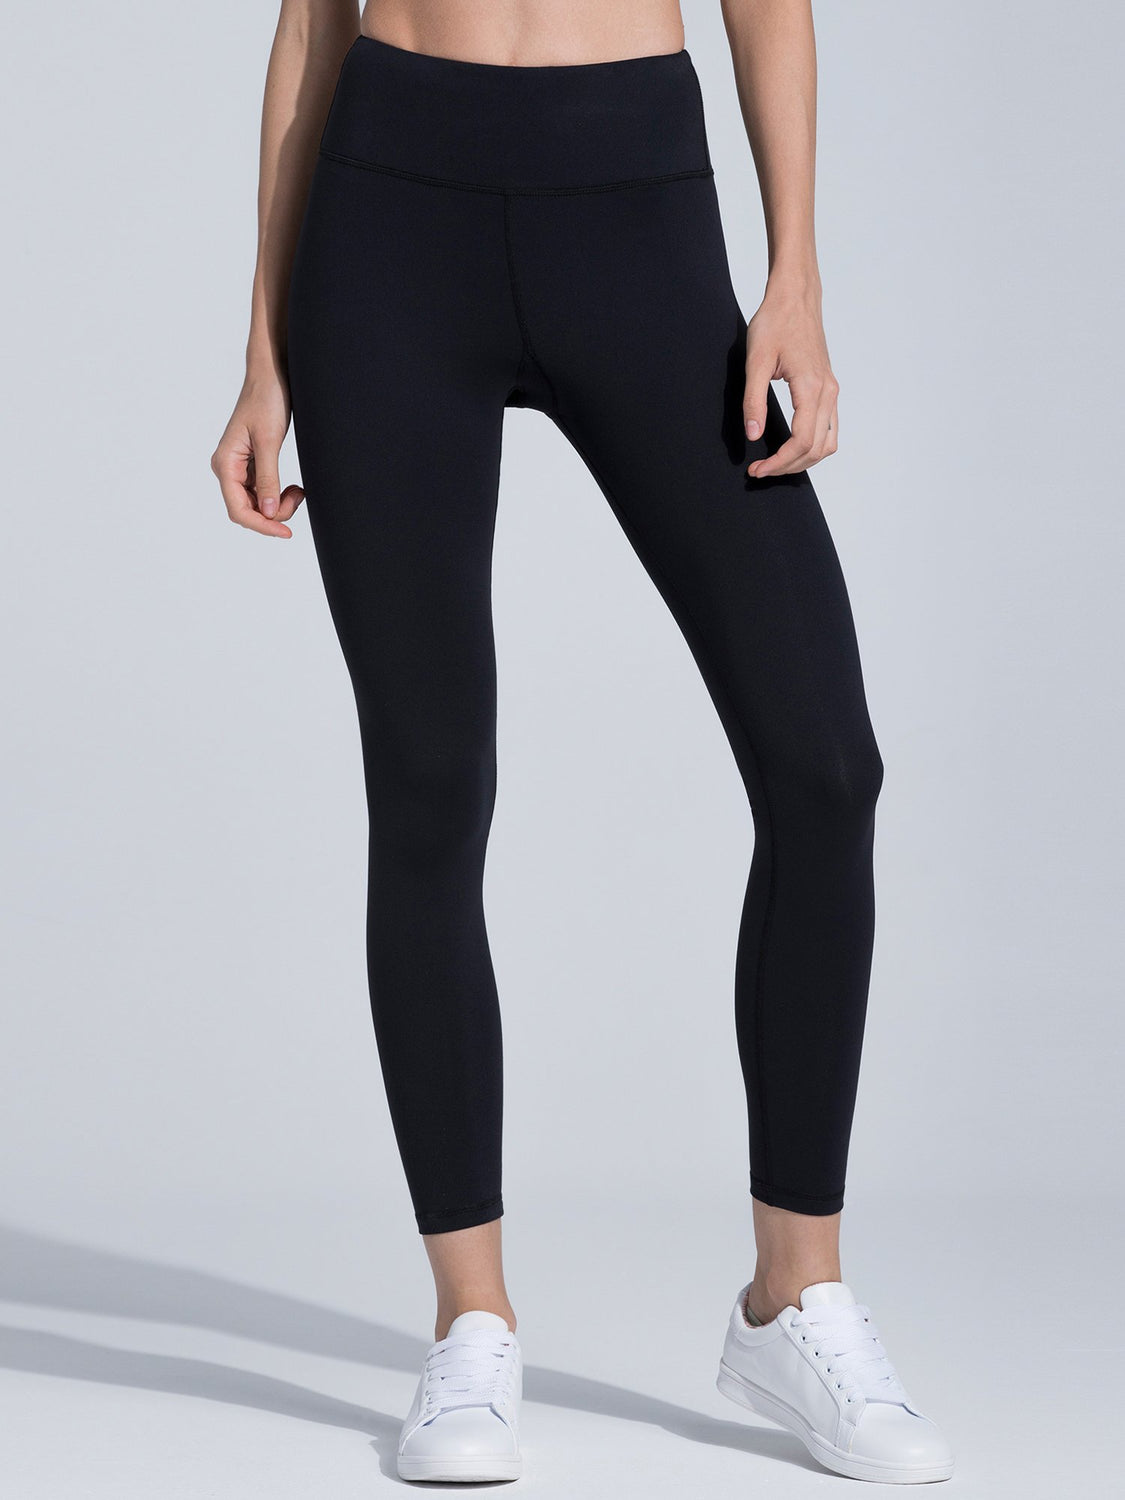 PERFECT PANTS, BLACK